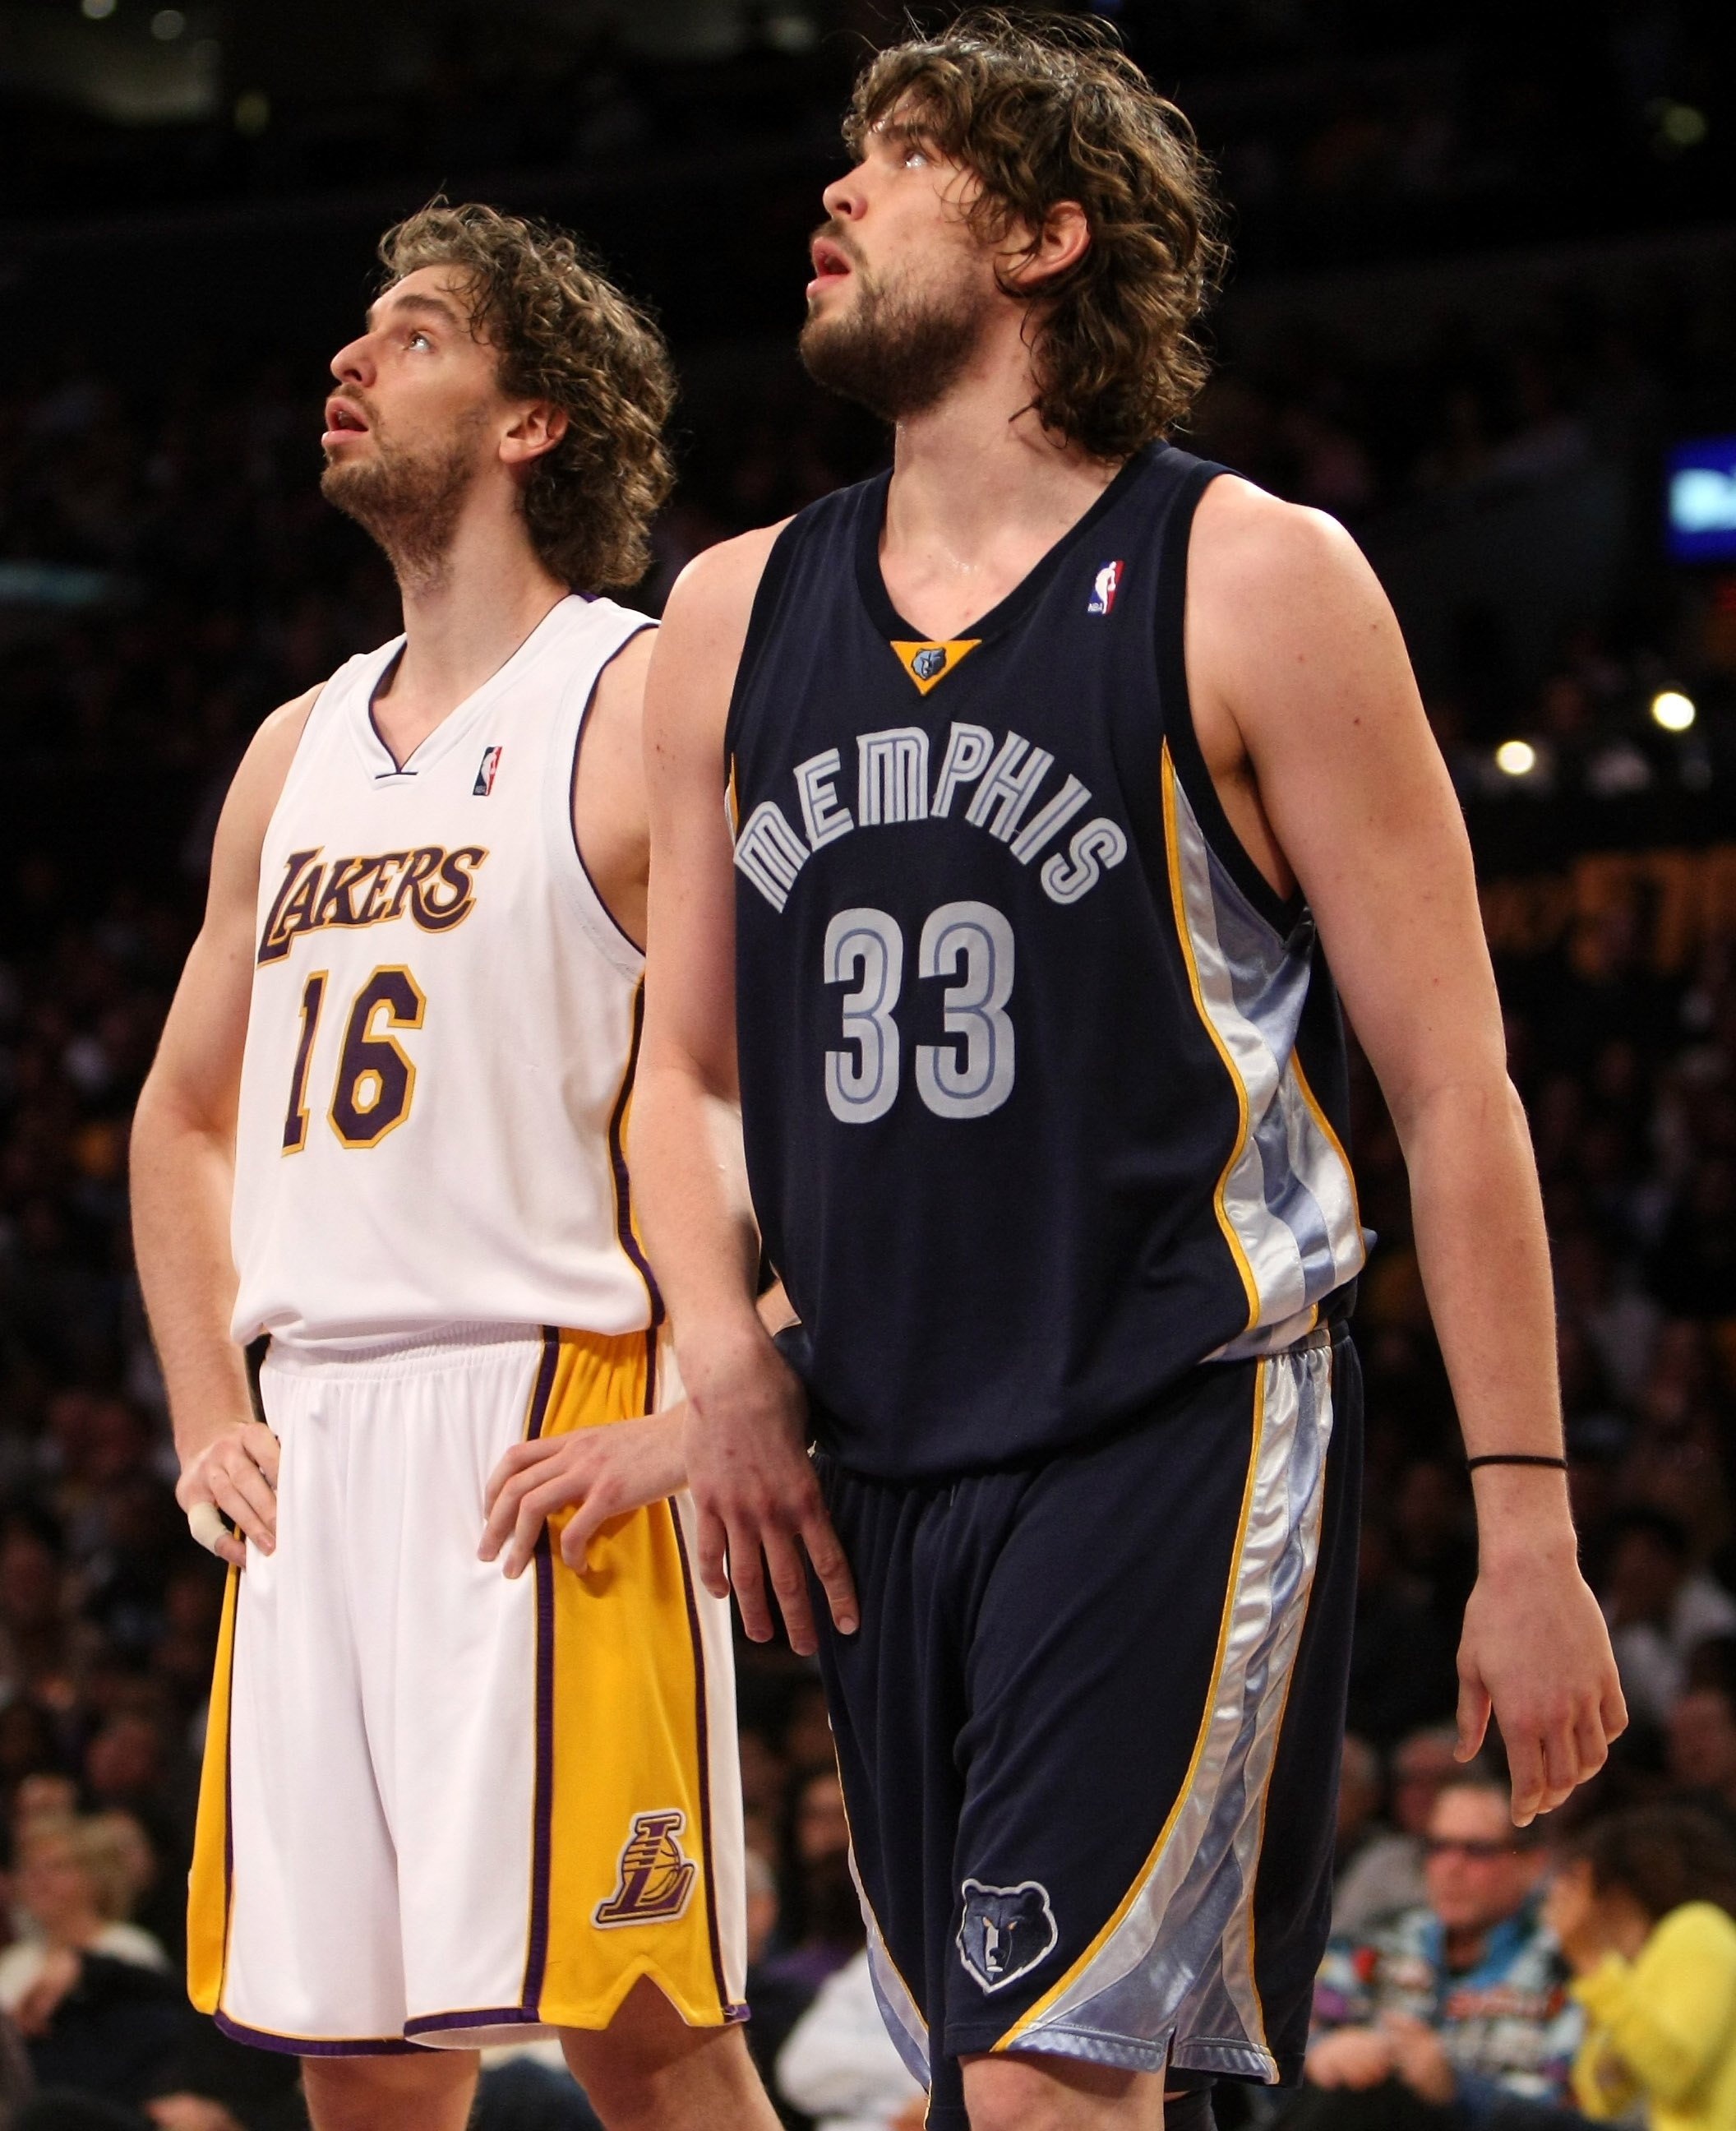 LOS ANGELES, CA - APRIL 12:  Marc Gasol #33 of the Memphis Grizzlies and Pau Gasol #16 of the Los Angeles Lakers wait for the play under the basket on April 12, 2009 at Staples Center in Los Angeles, California. NOTE TO USER: User expressly acknowledges a